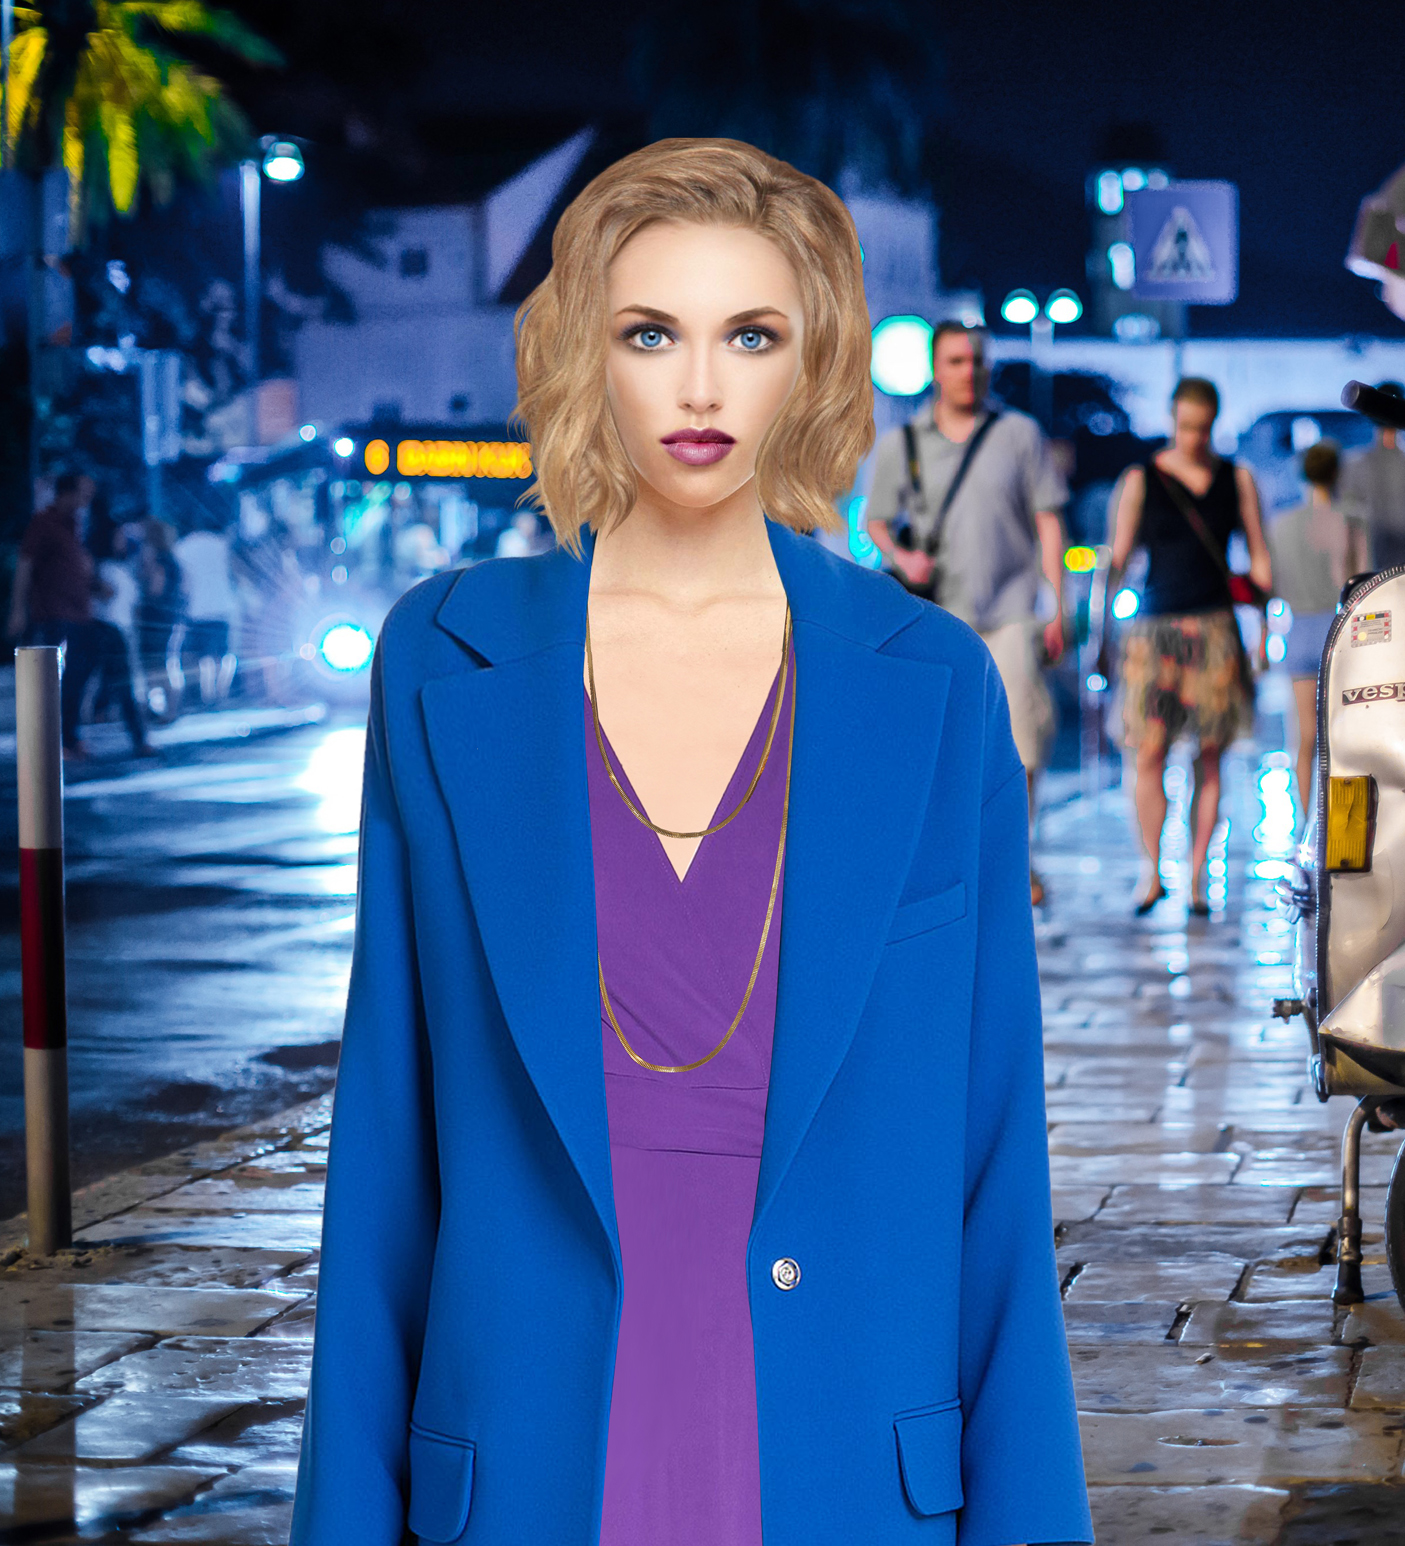 Blue Model Can You Wear A Blue Coat With A Purple Dress My Fashion Wants